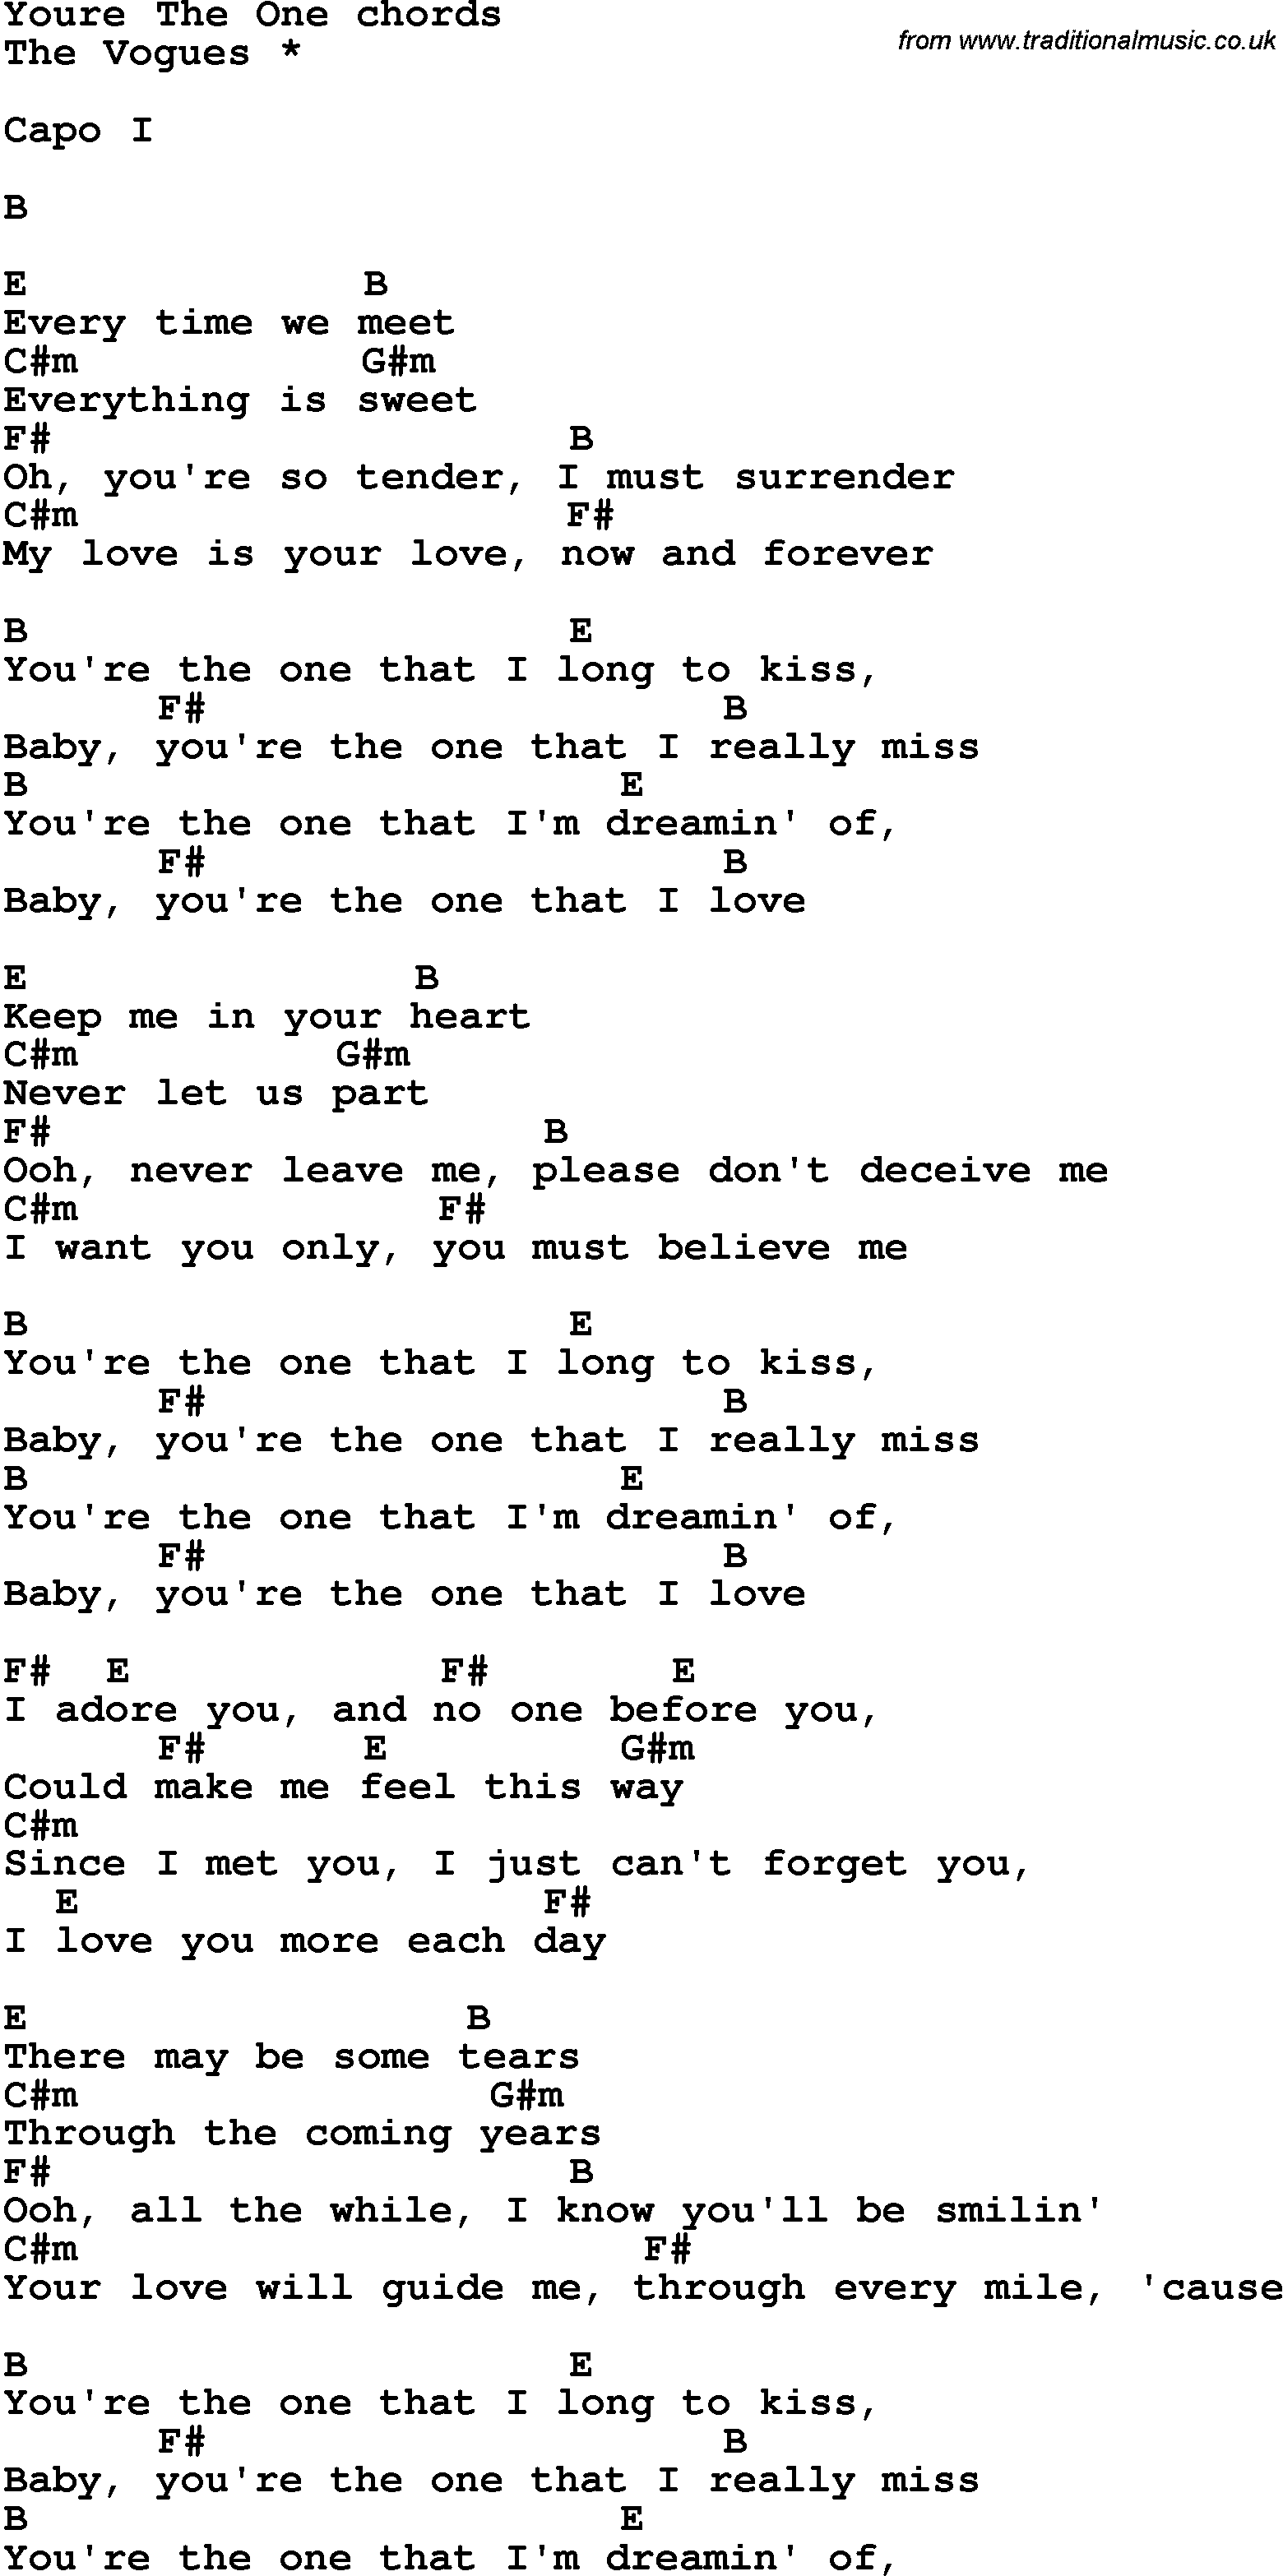 Song Lyrics With Guitar Chords For Youre The One The Vogues